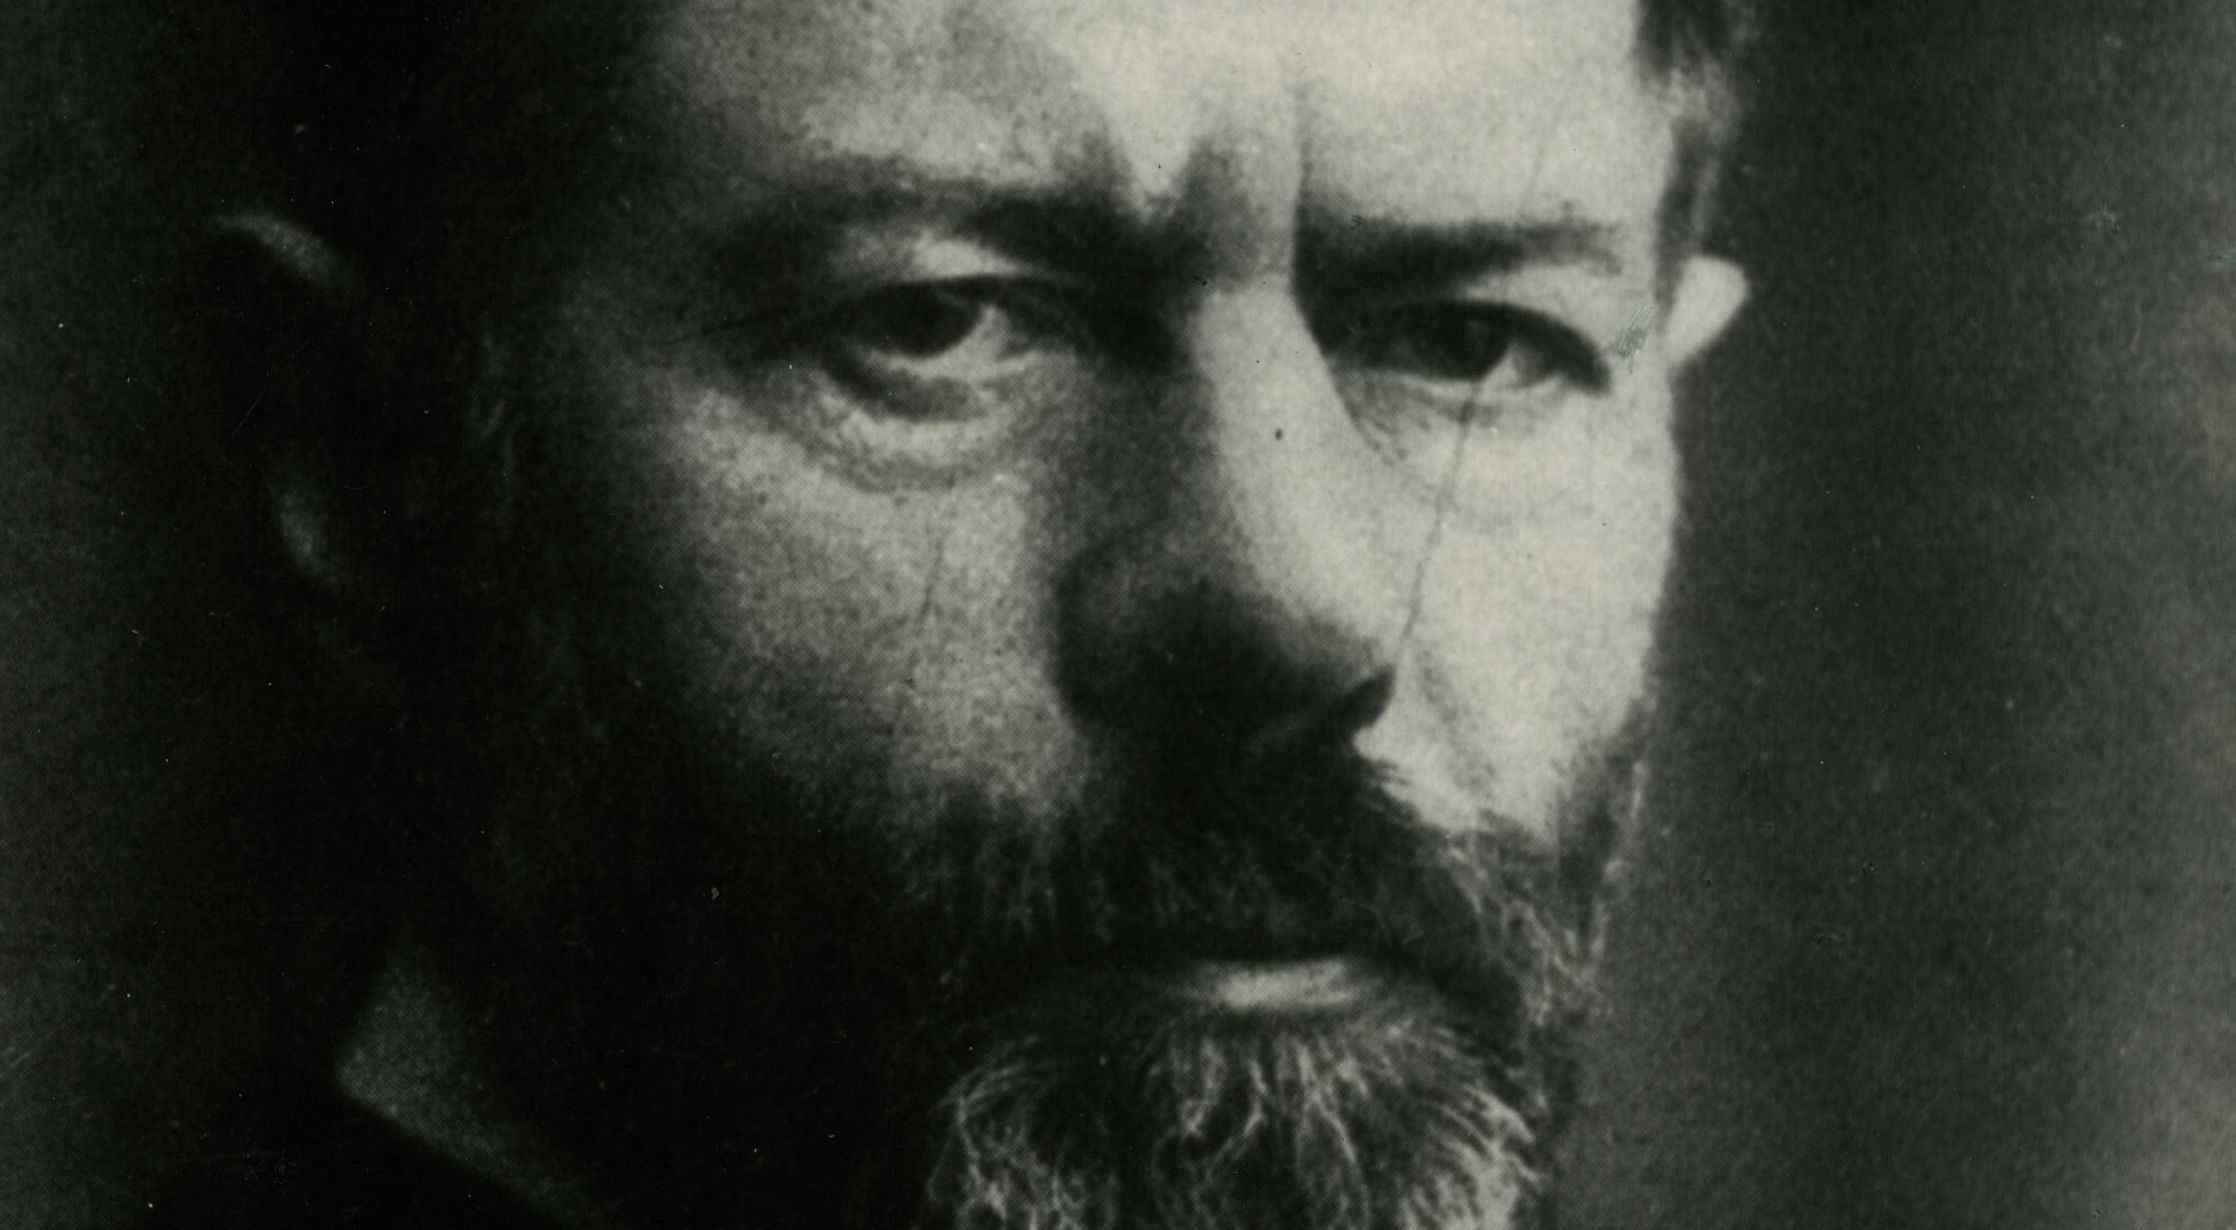 max weber life accomplishments Max weber grew up in a protestant family his mother, who was from a southern german protestant background, would remain a powerful moral force in his life.